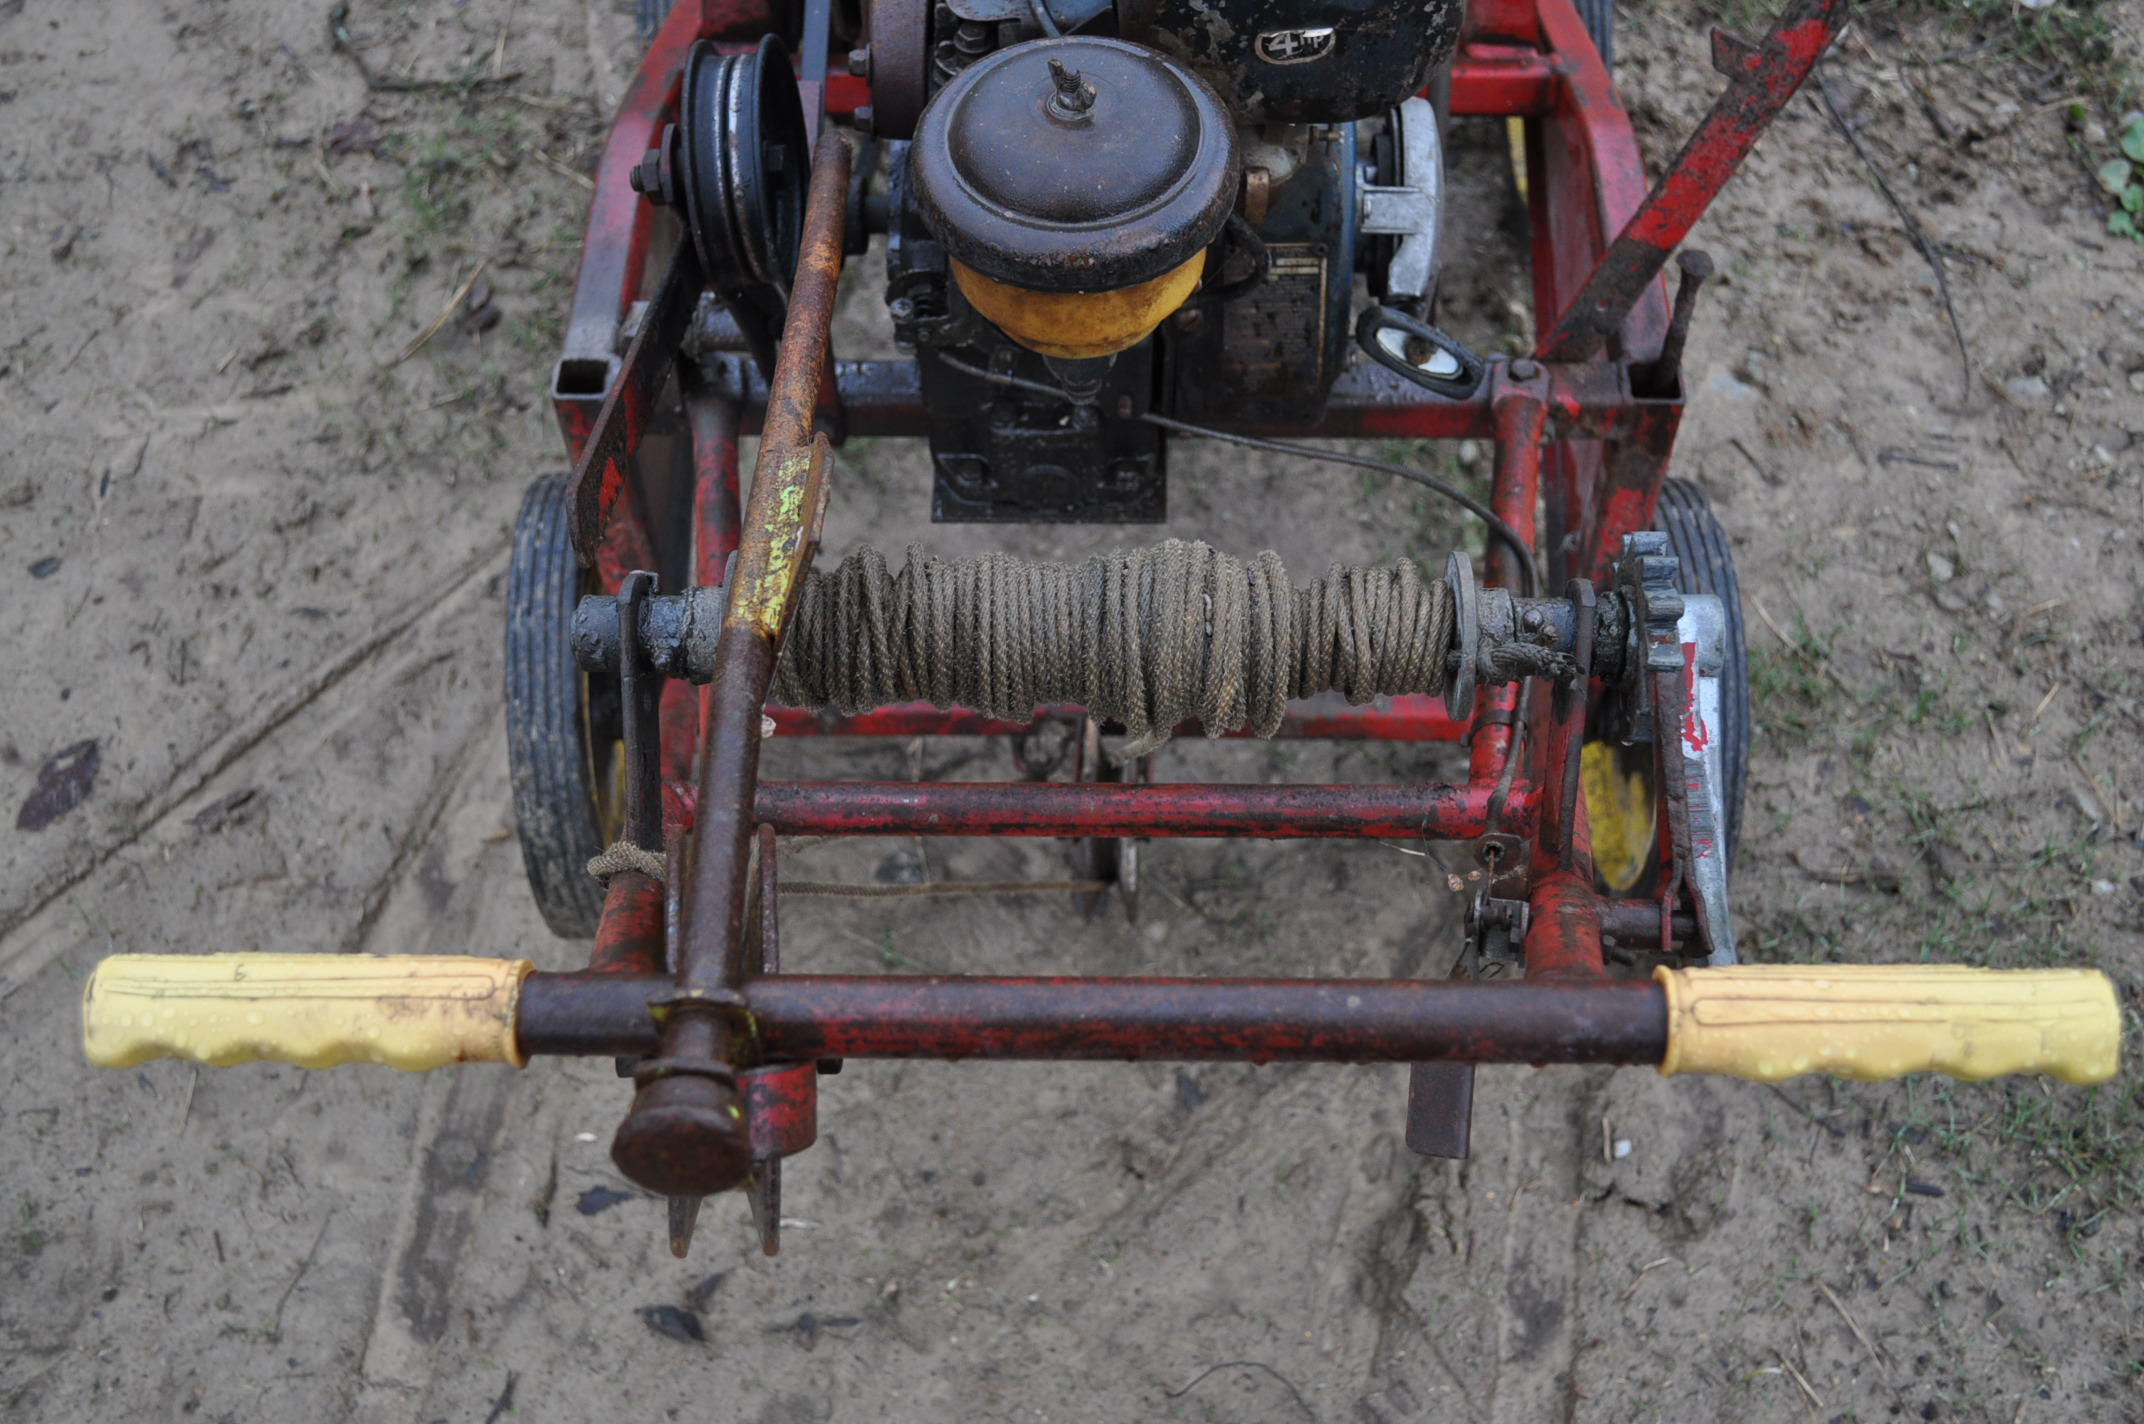 Gas powered walk-behind trencher, Kohler gas - Image 5 of 6